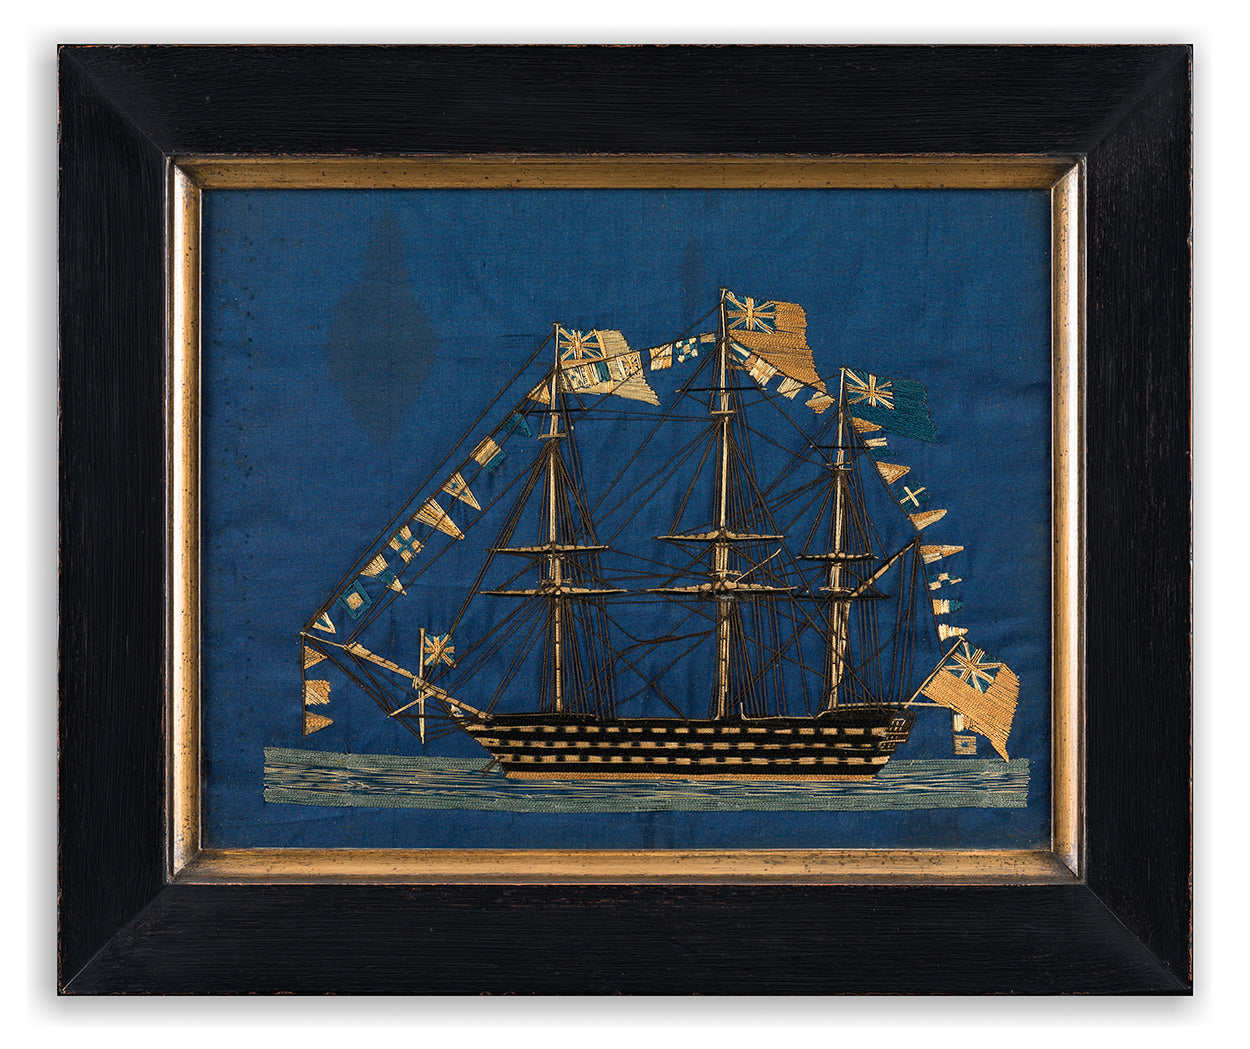 Antique Naval Needlework or Woolwork Ship Portrait